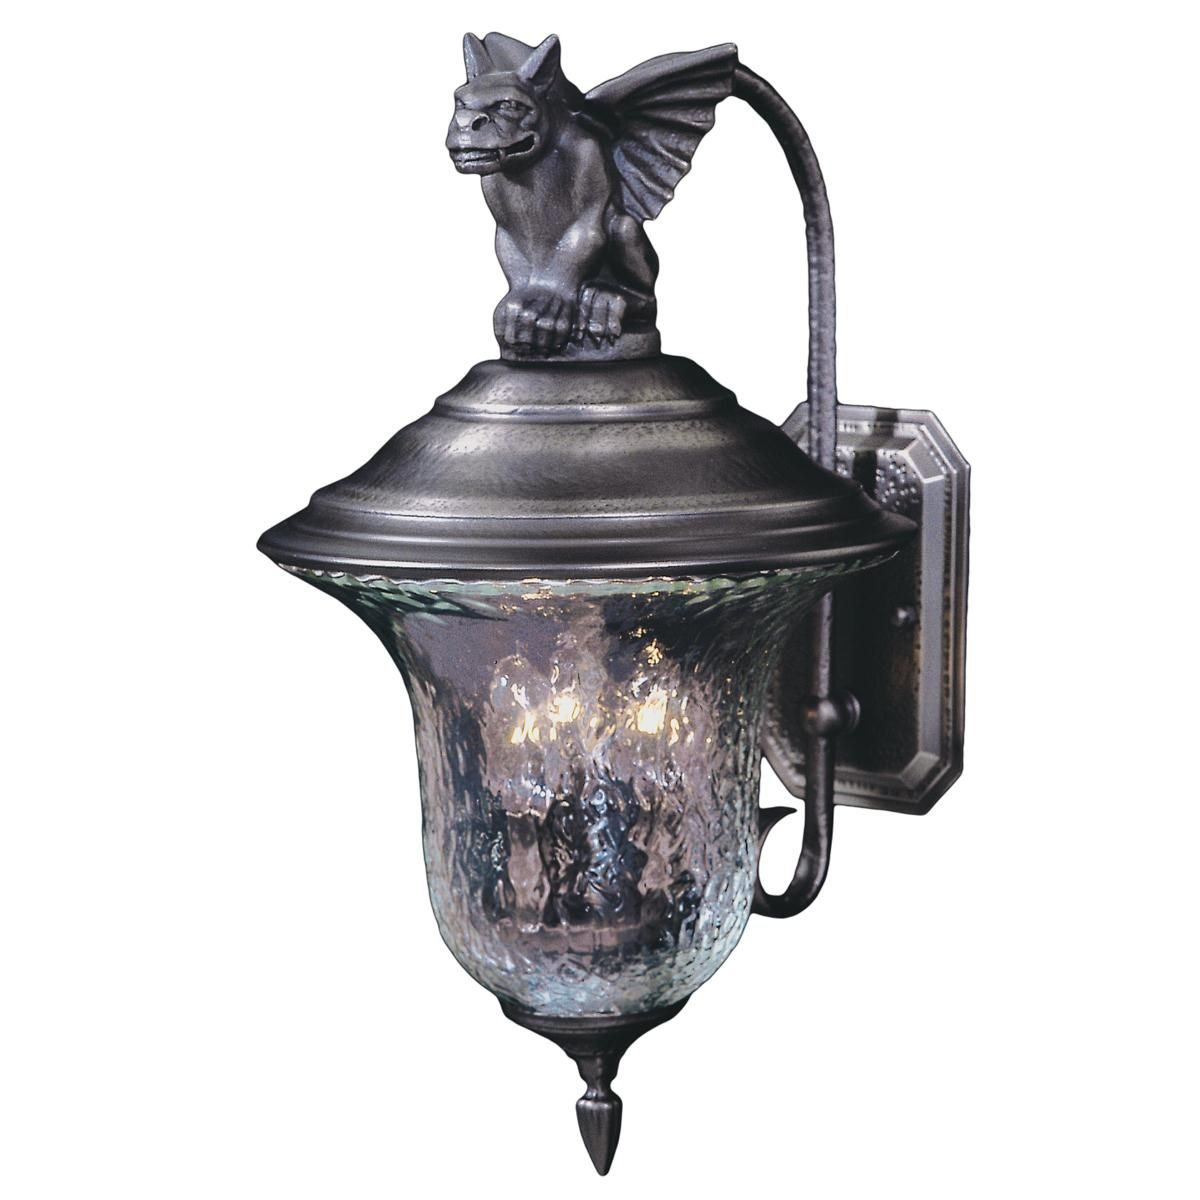 Gothic Gargoyle Outdoor Light Large Gothic Gargoyles